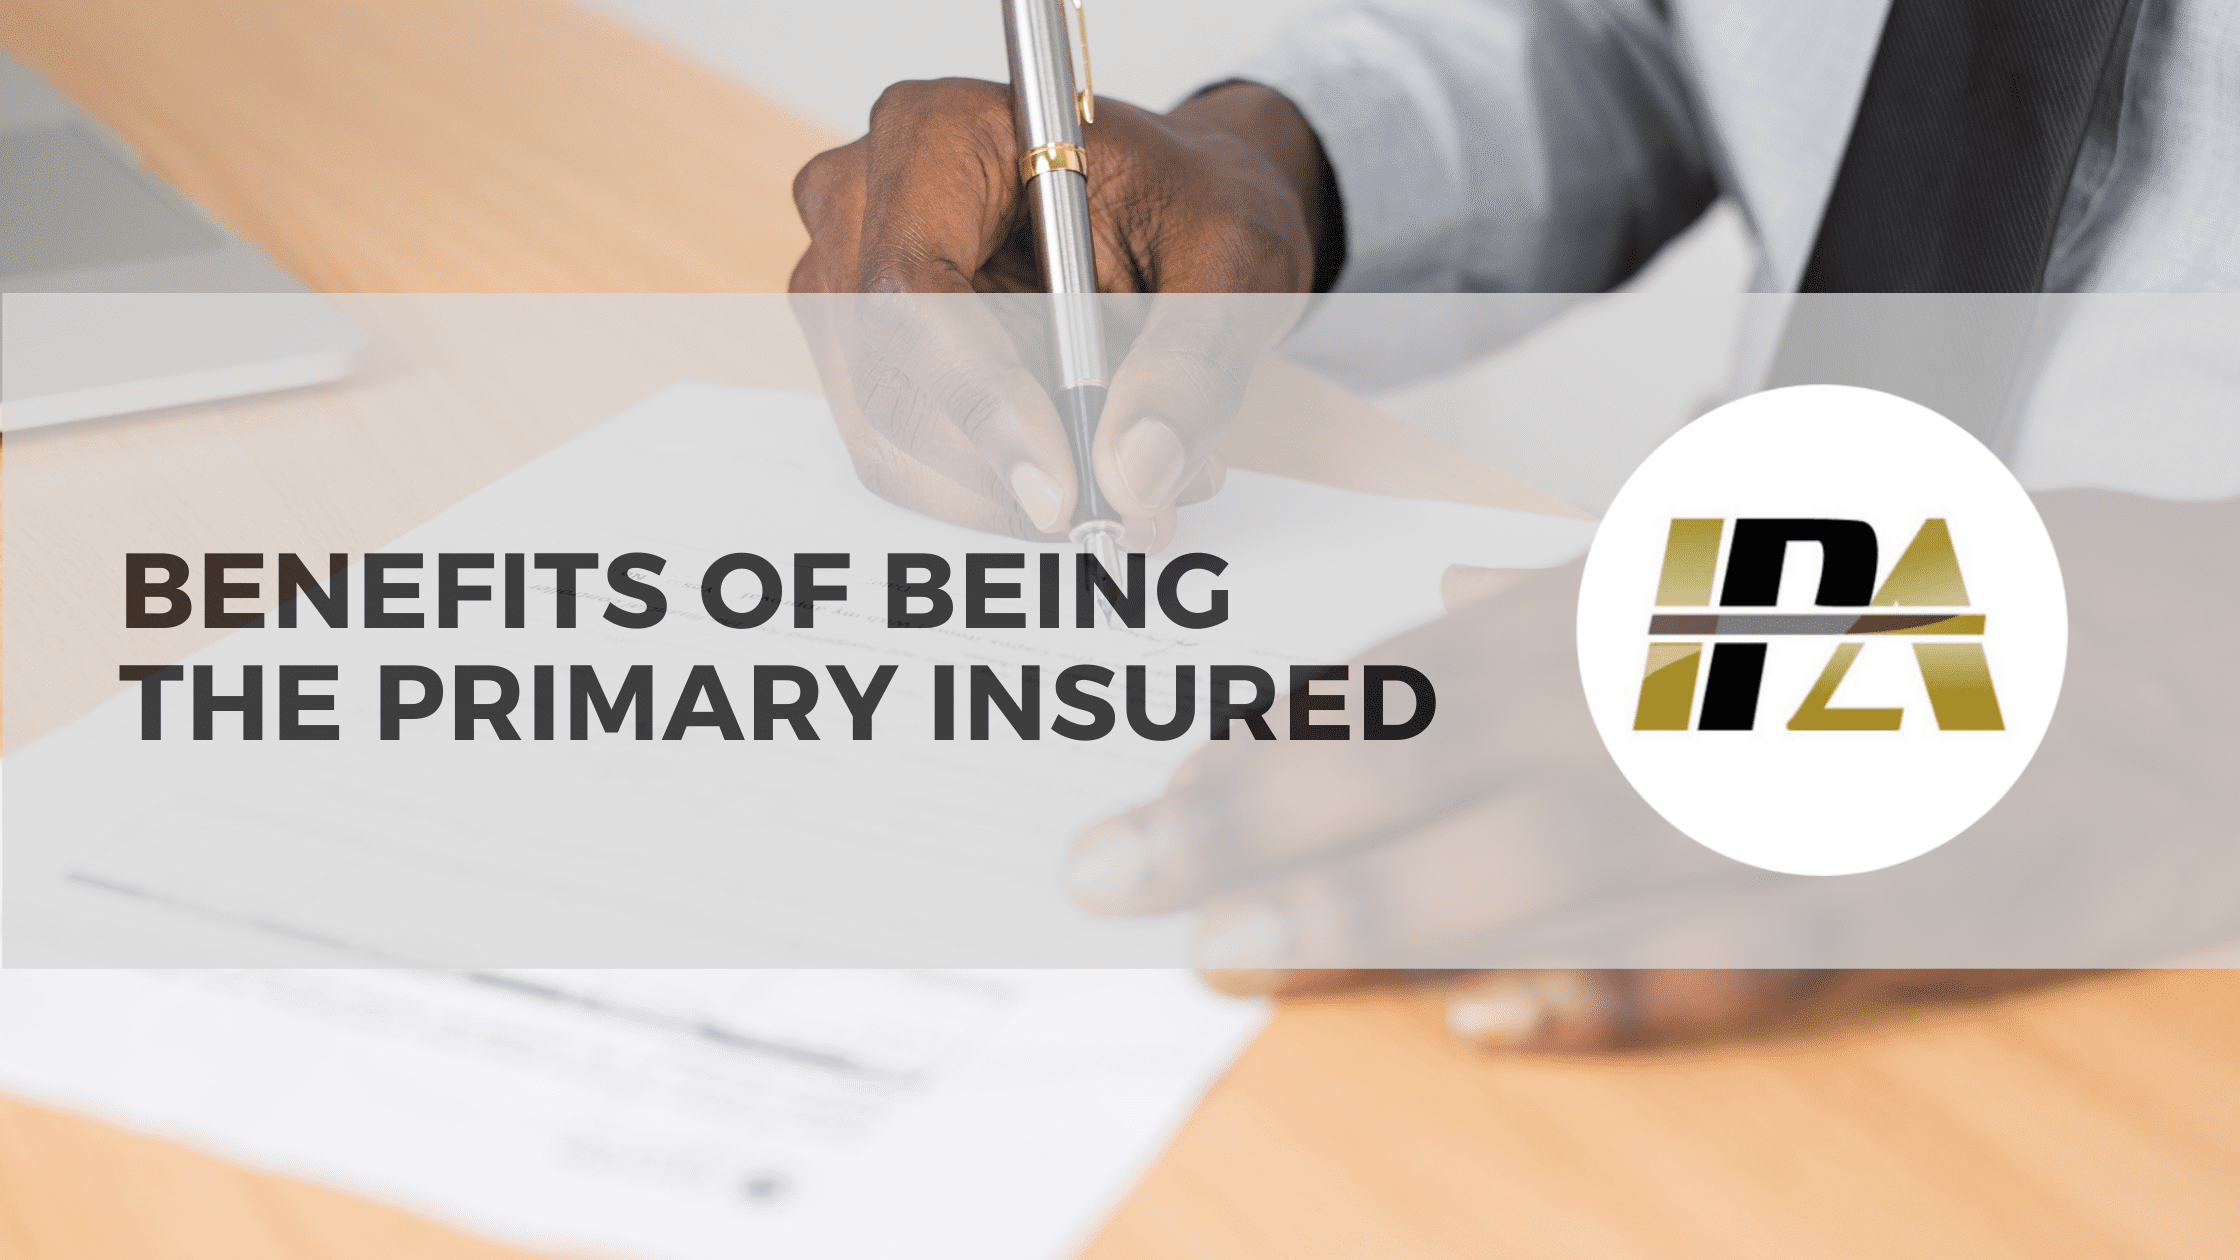 Benefits of Being the Primary Insured